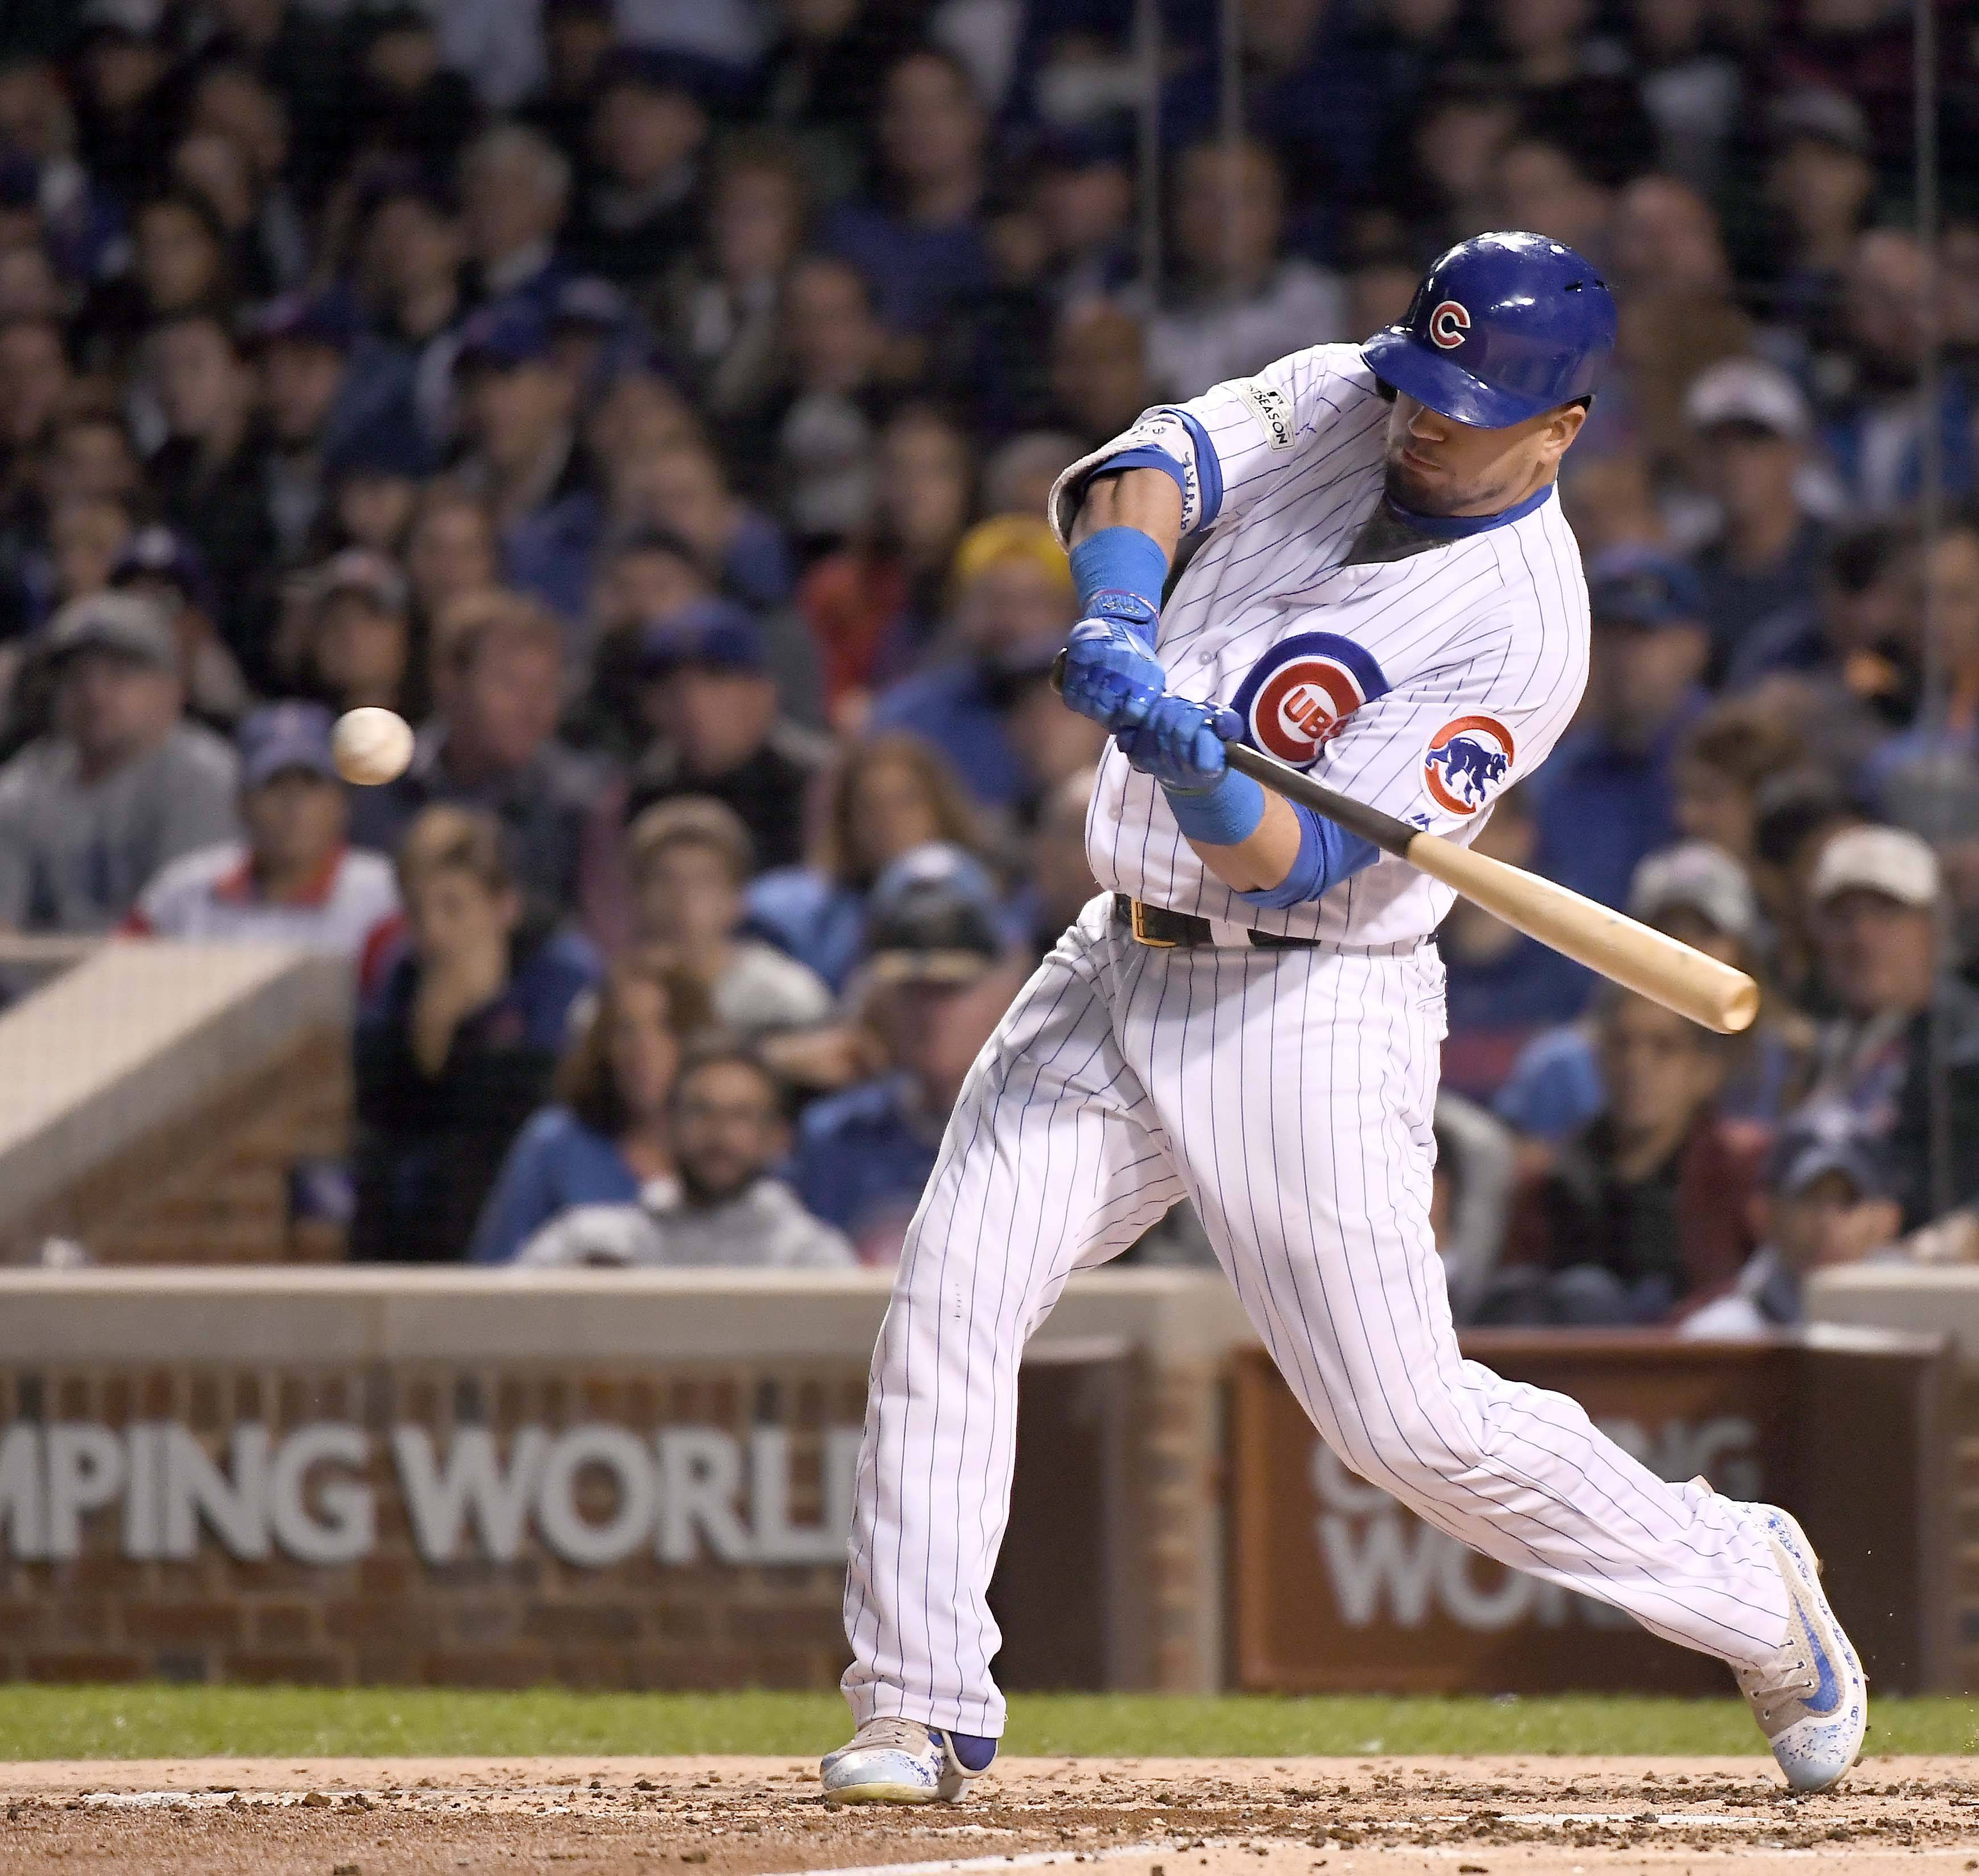 John Starks/jstarks@dailyherald.comChicago Cubs left fielder Kyle Schwarber (12) grounds out to end the 3rd inning during Game 4 of the National League championship series, Oct, 18 2017, at Wrigley Field in Chicago.